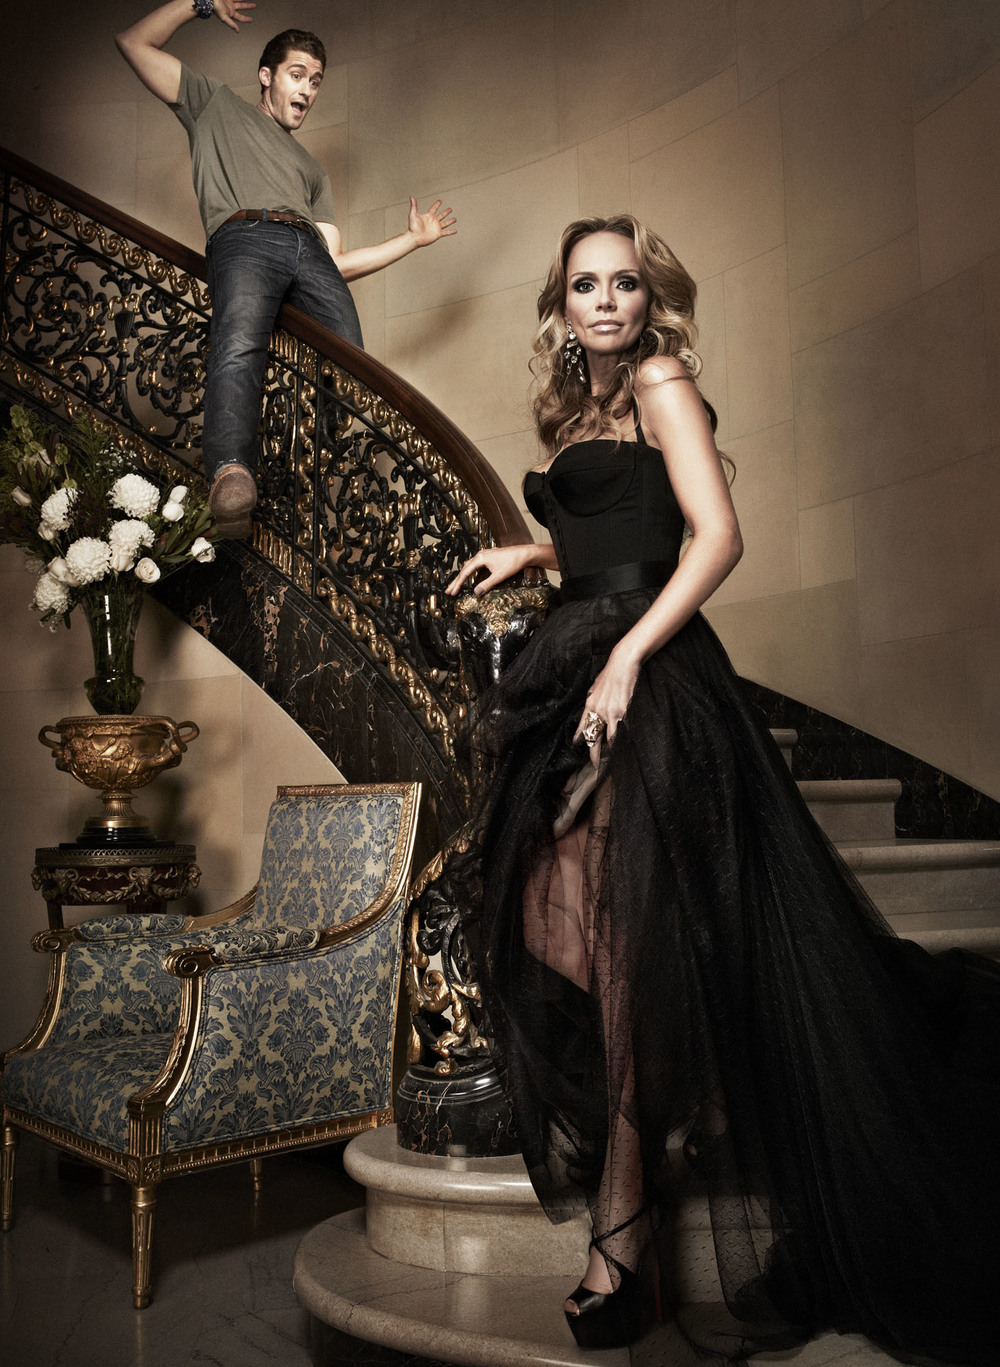 Kristen_Chenoweth_Stairs_further_retouched.jpg